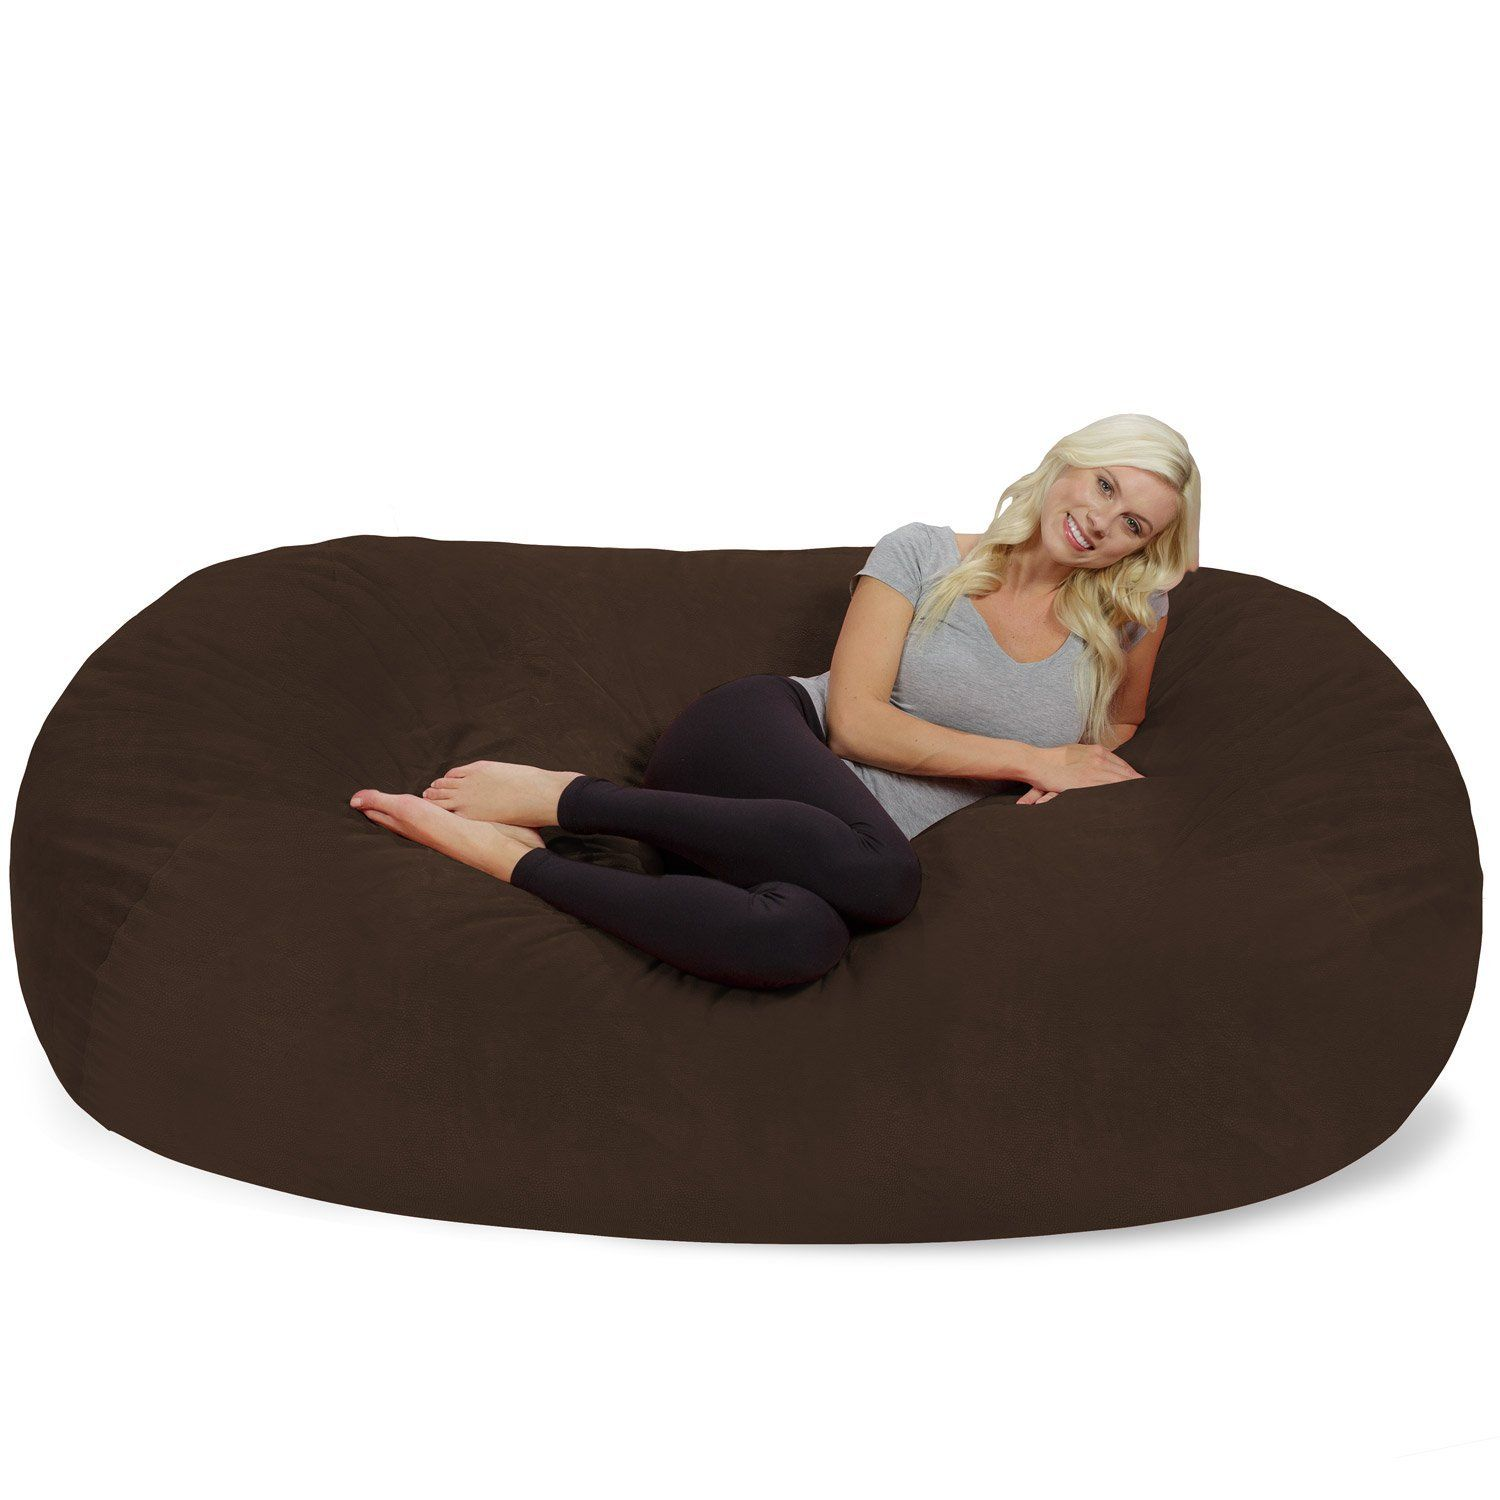 Top 10 Best Large Bean Bags Reviews in 2018 (With images